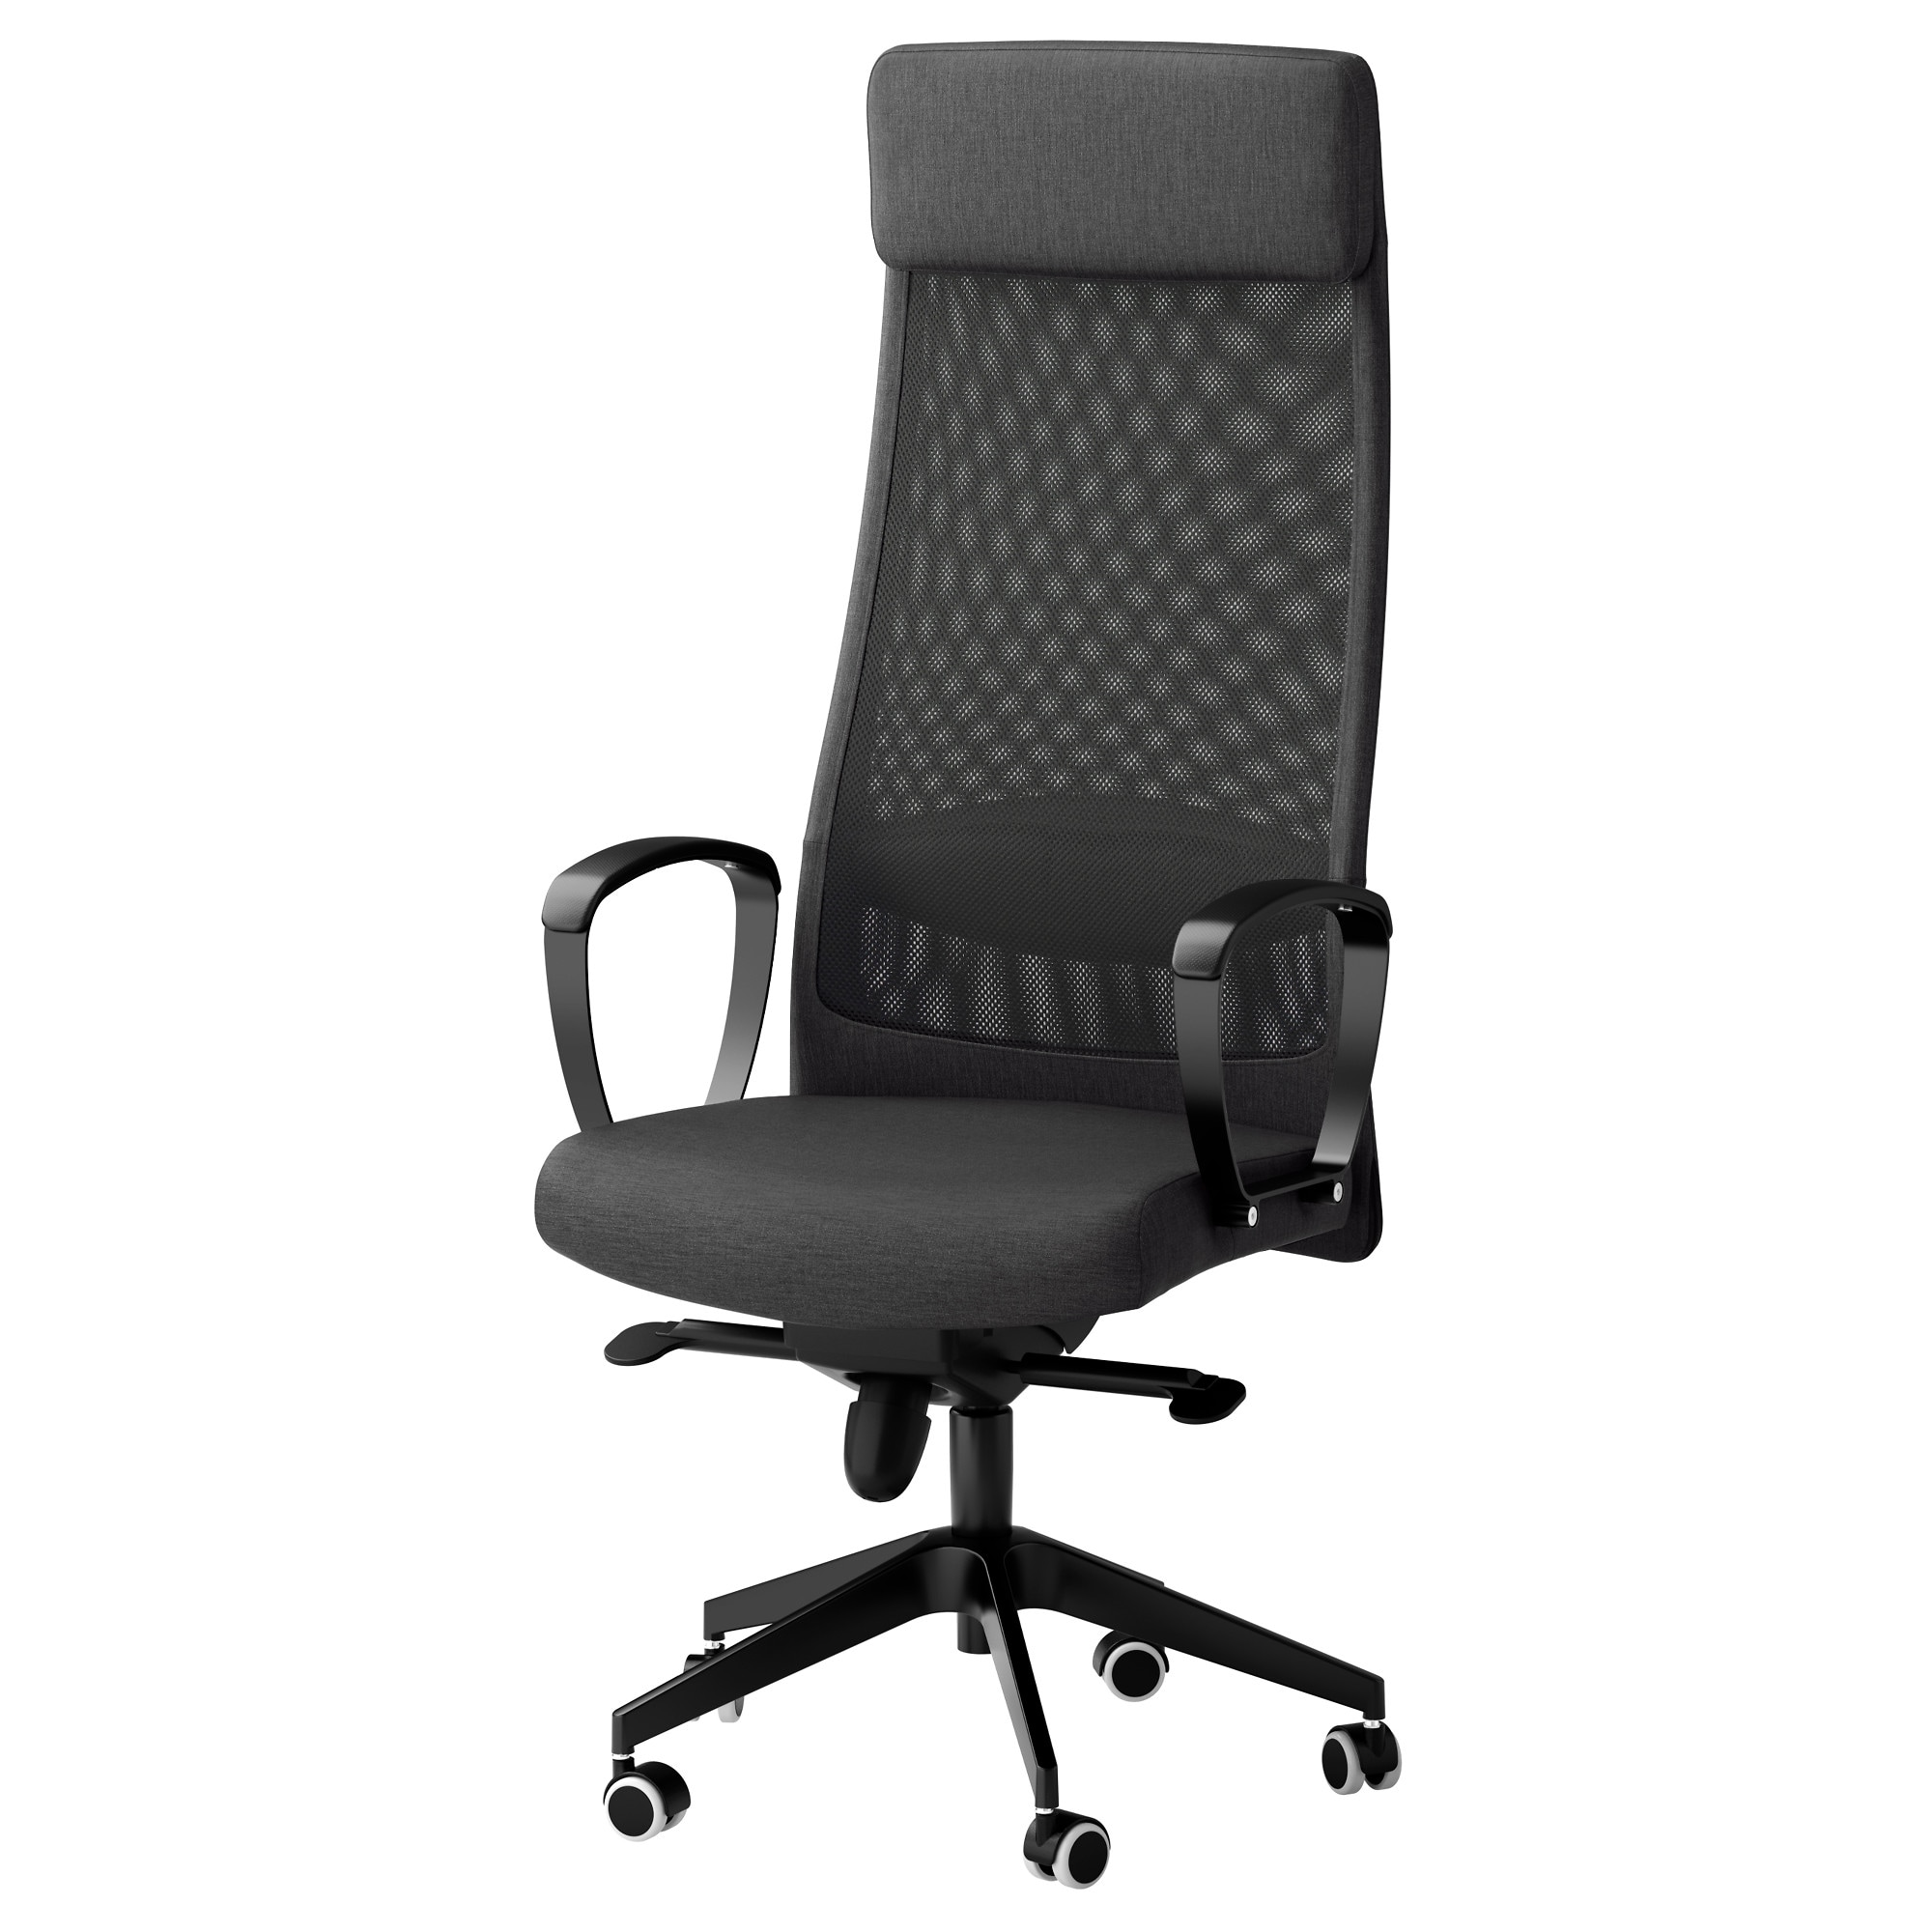 ikea office chairs canada. ikea office chairs canada 0